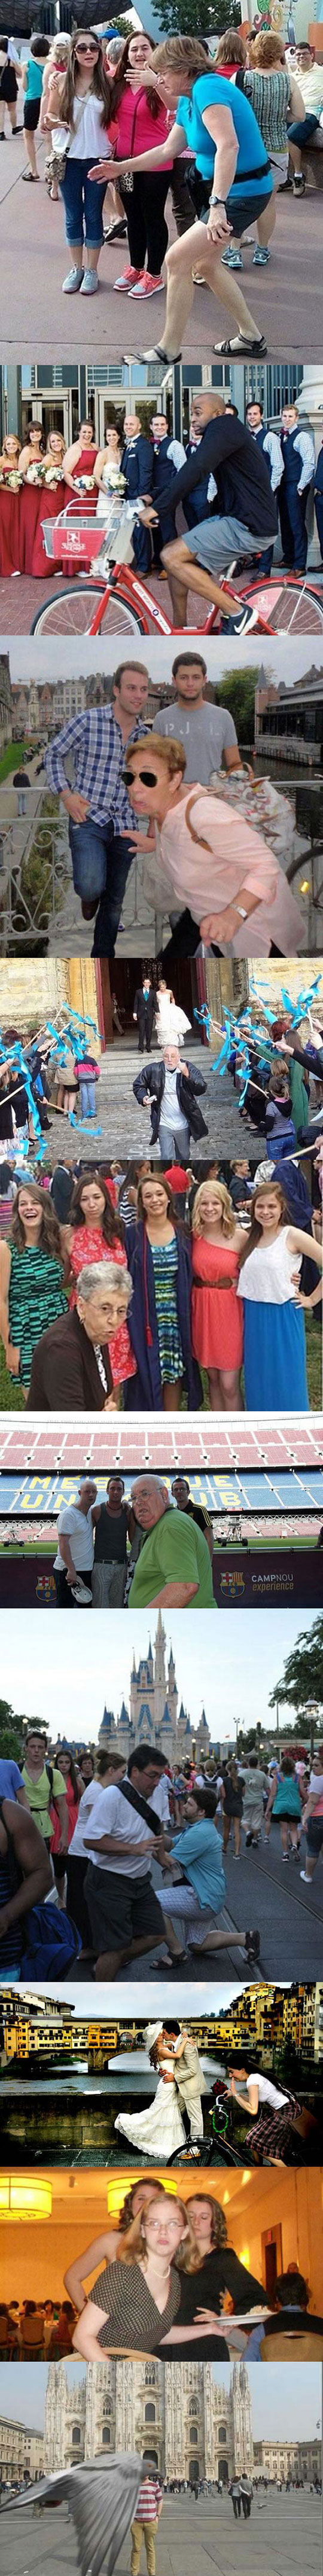 Funny Awkward Photo Bombs Joke Picture Collection